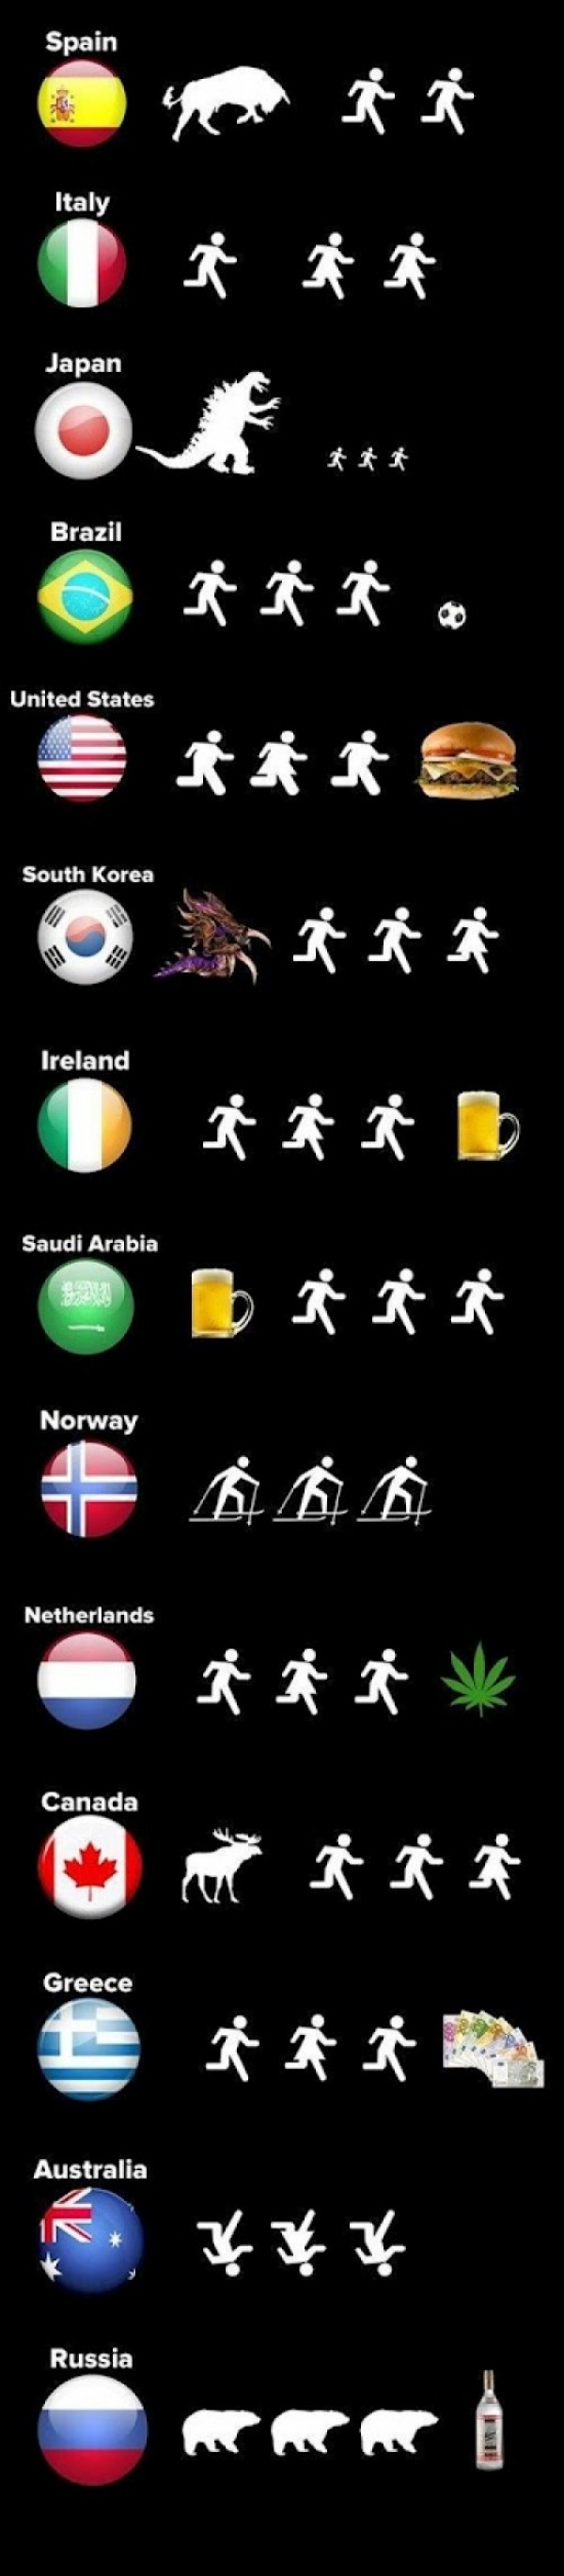 Different Countries Explained